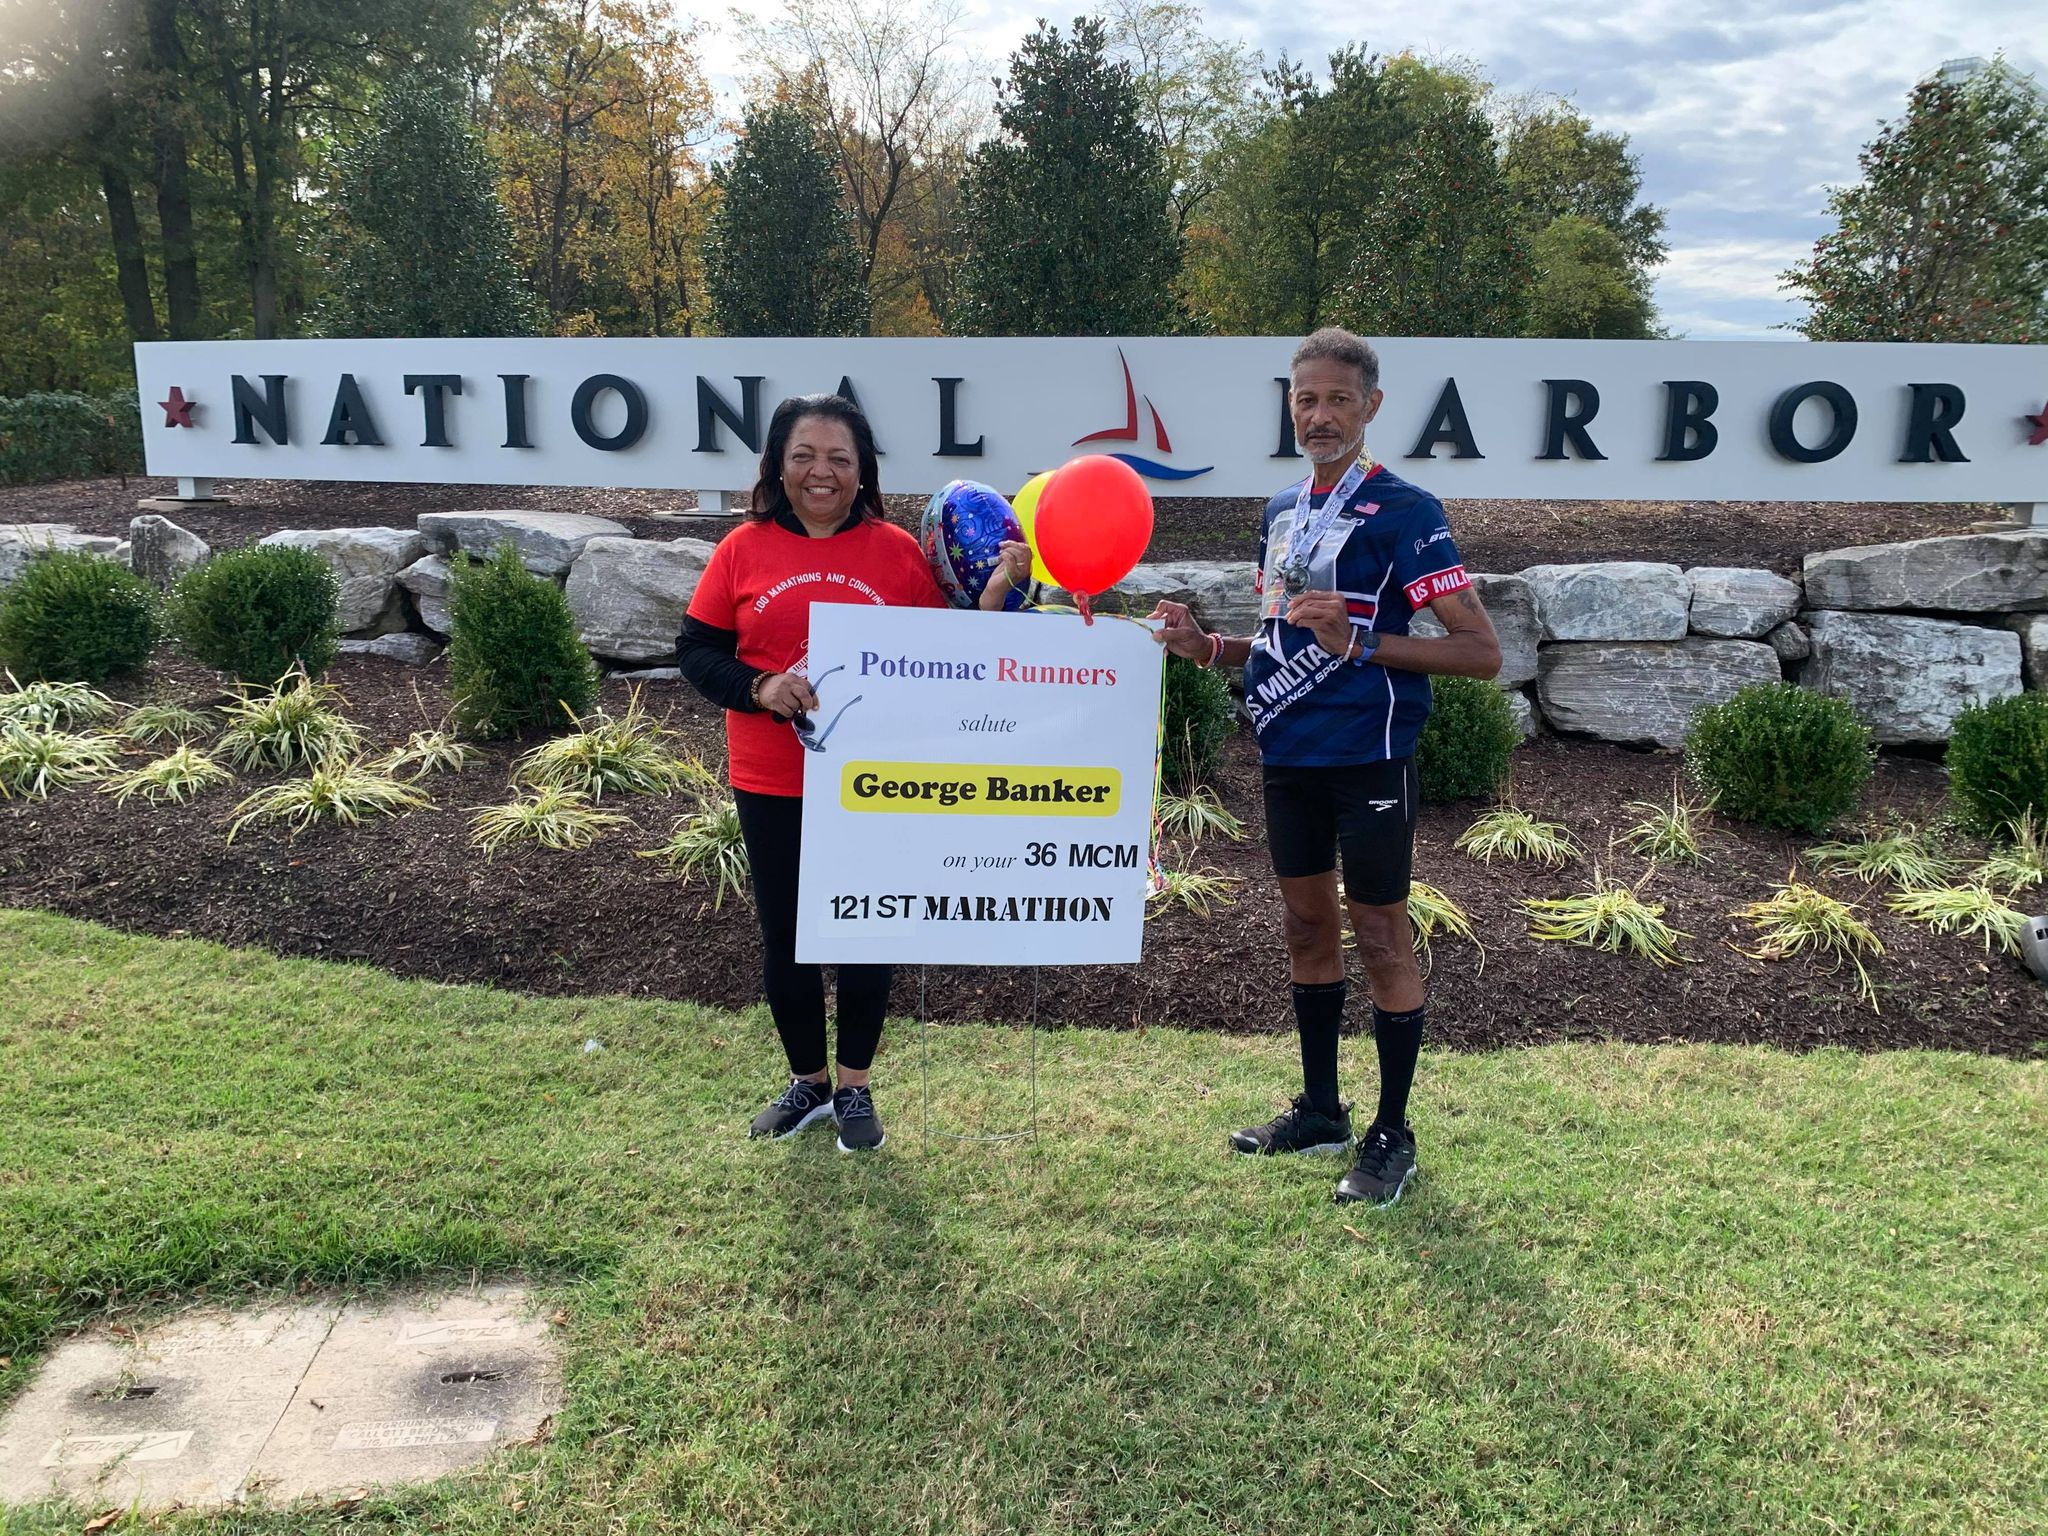 Bernadette and George Banker celebrate his 36th running of the Marine Corps Marathon, his 121st marathon overall and the fourth of his streak during the pandemic. (Photo courtesy of George Banker.)